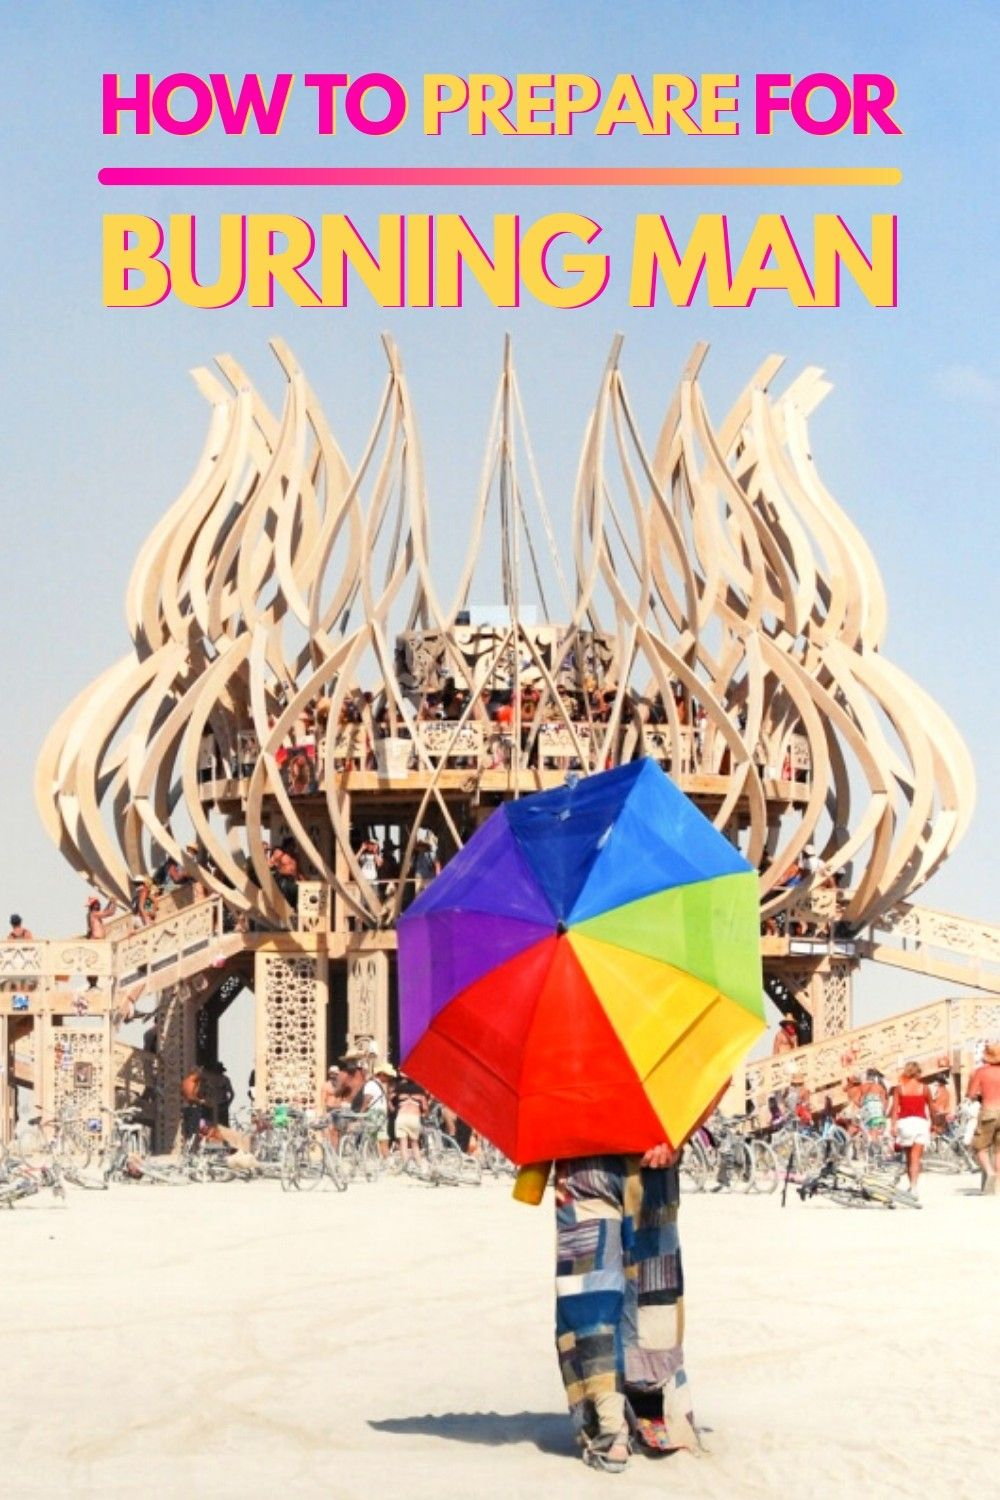 How Do I Get Tickets To Burning Man 2020